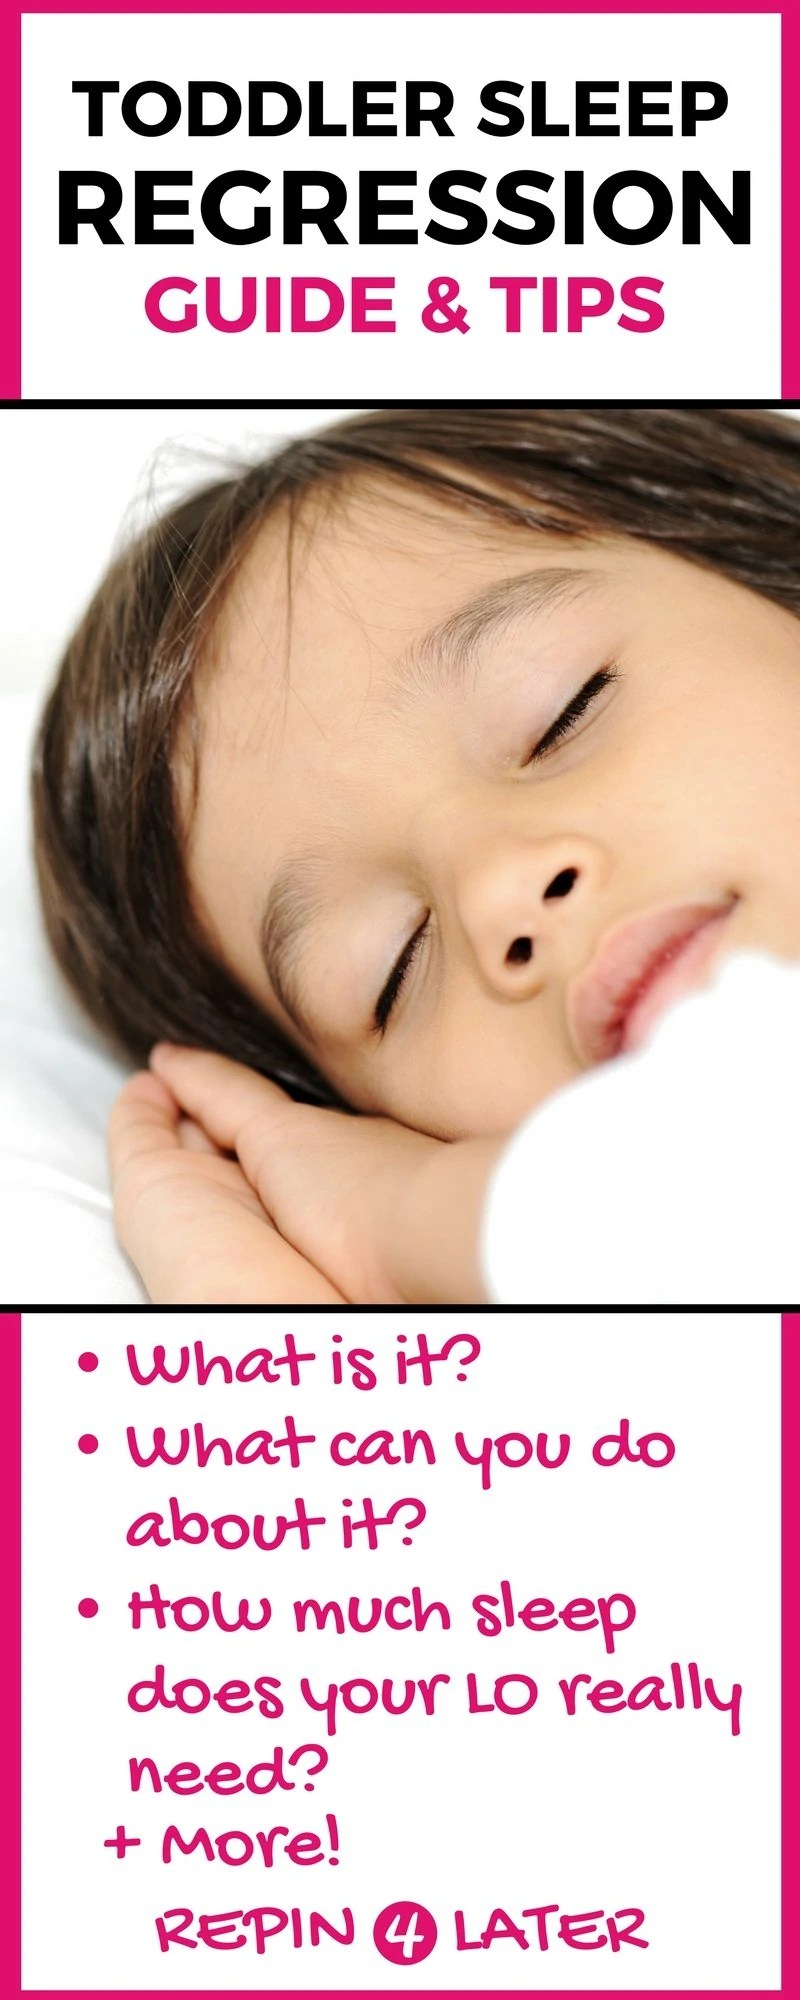 Toddler sleep regression is real! This guide written by a sleep training expert has great sleep regression tips, example toddler sleep schedule, and general toddler sleep training help! Start getting more sleep today!